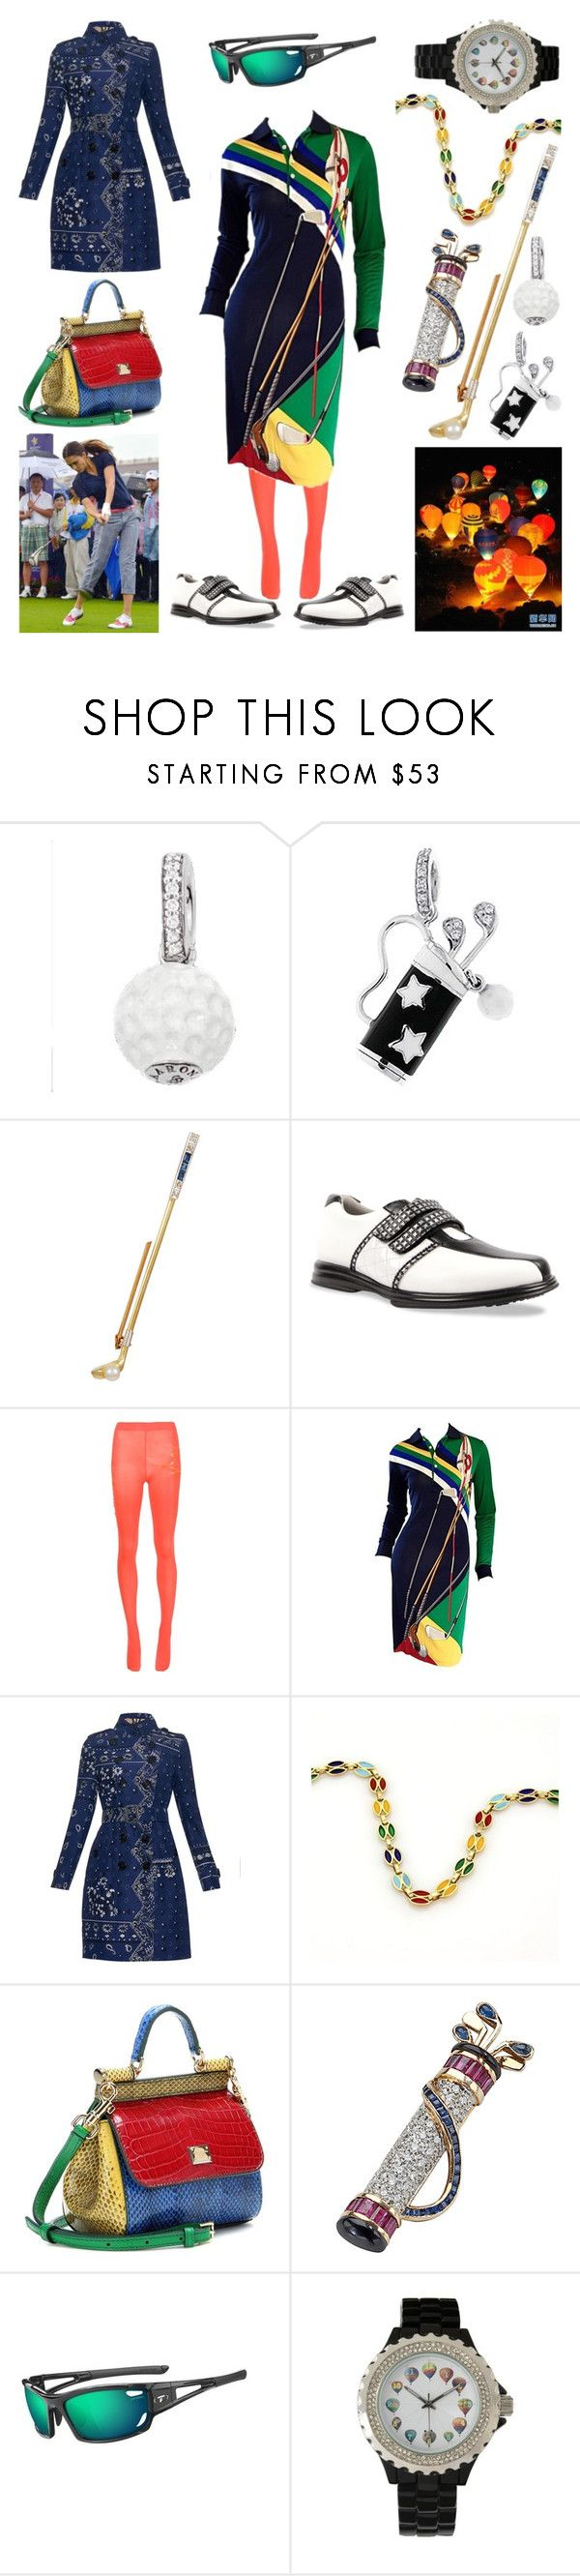 """""""Haikou, China"""" by creation-gallery ❤ liked on Polyvore featuring Aaron Basha, Krystal, Tsumori Chisato, Ralph Lauren, Burberry, Dolce&Gabbana, Tifosi, women's clothing, women and female"""